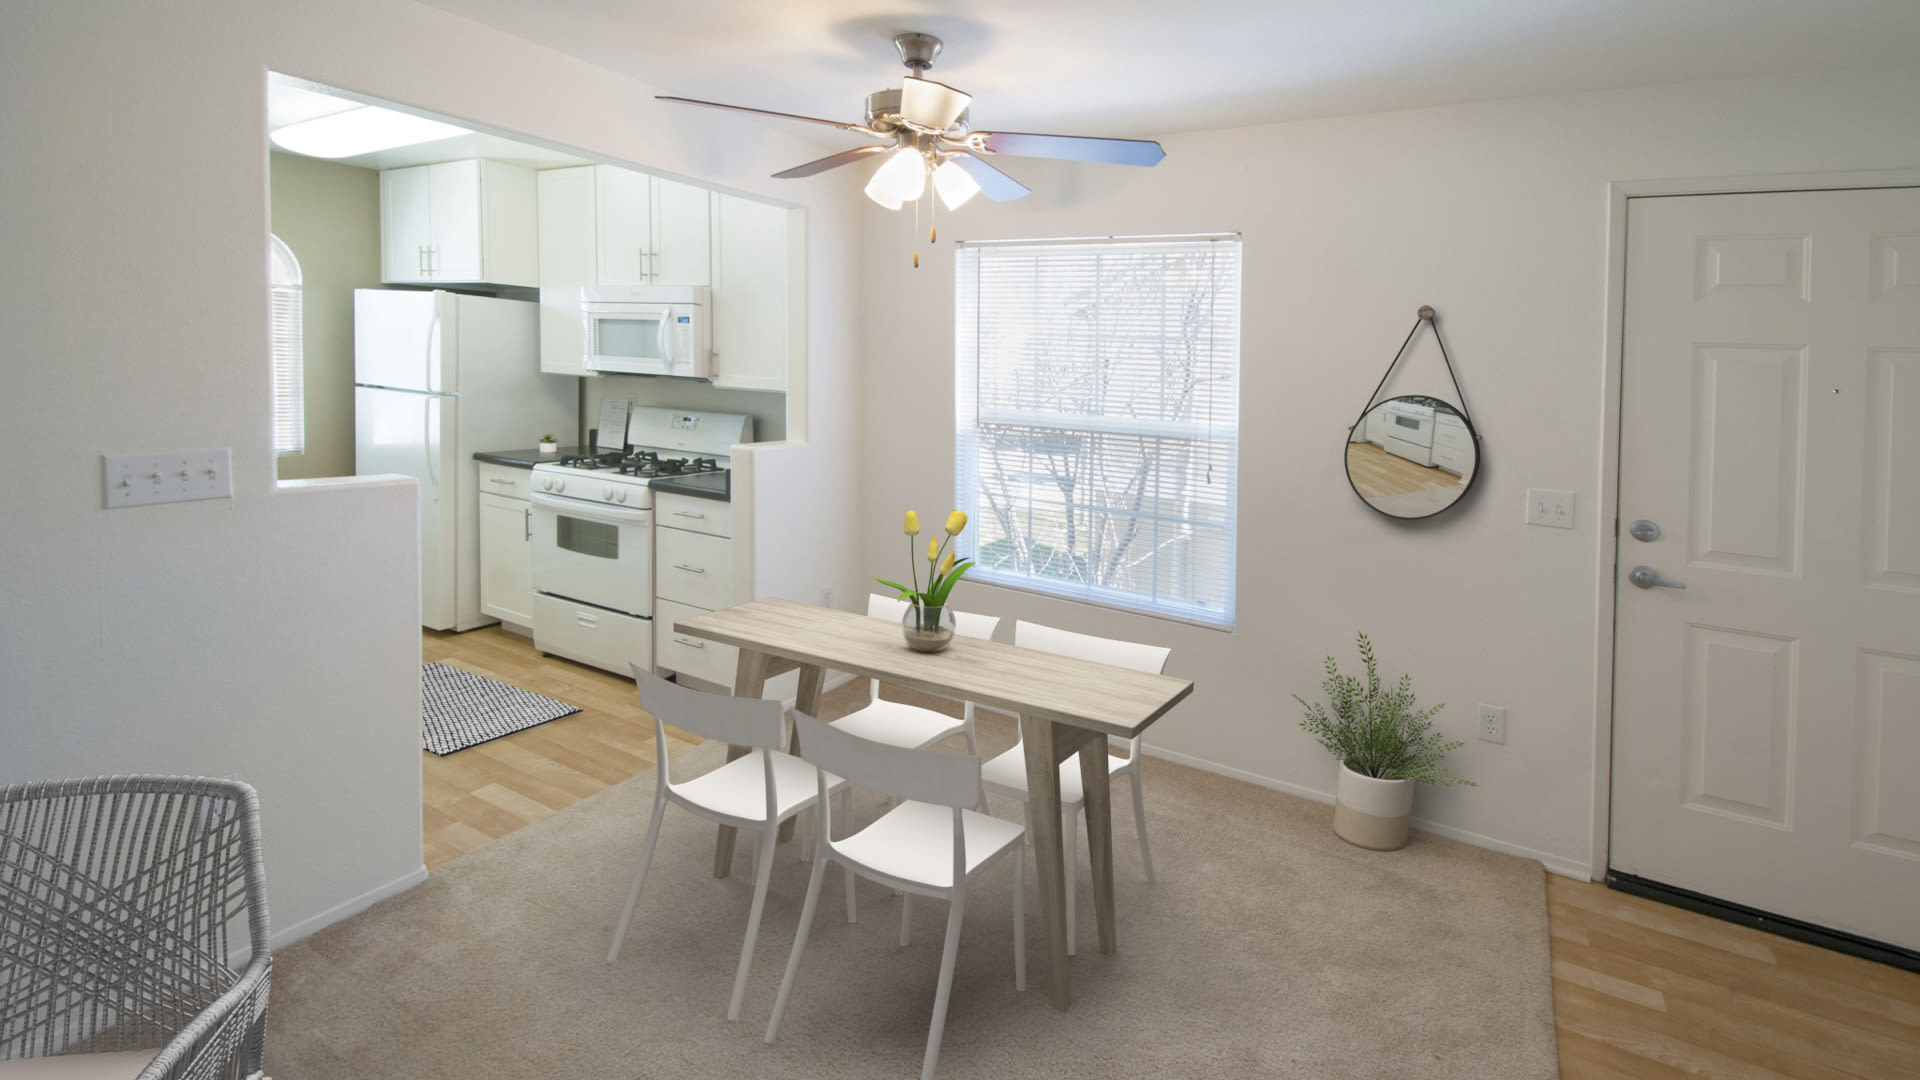 Ridgewood Apartments - Living Room and Kitchen with Hard Surface Flooring